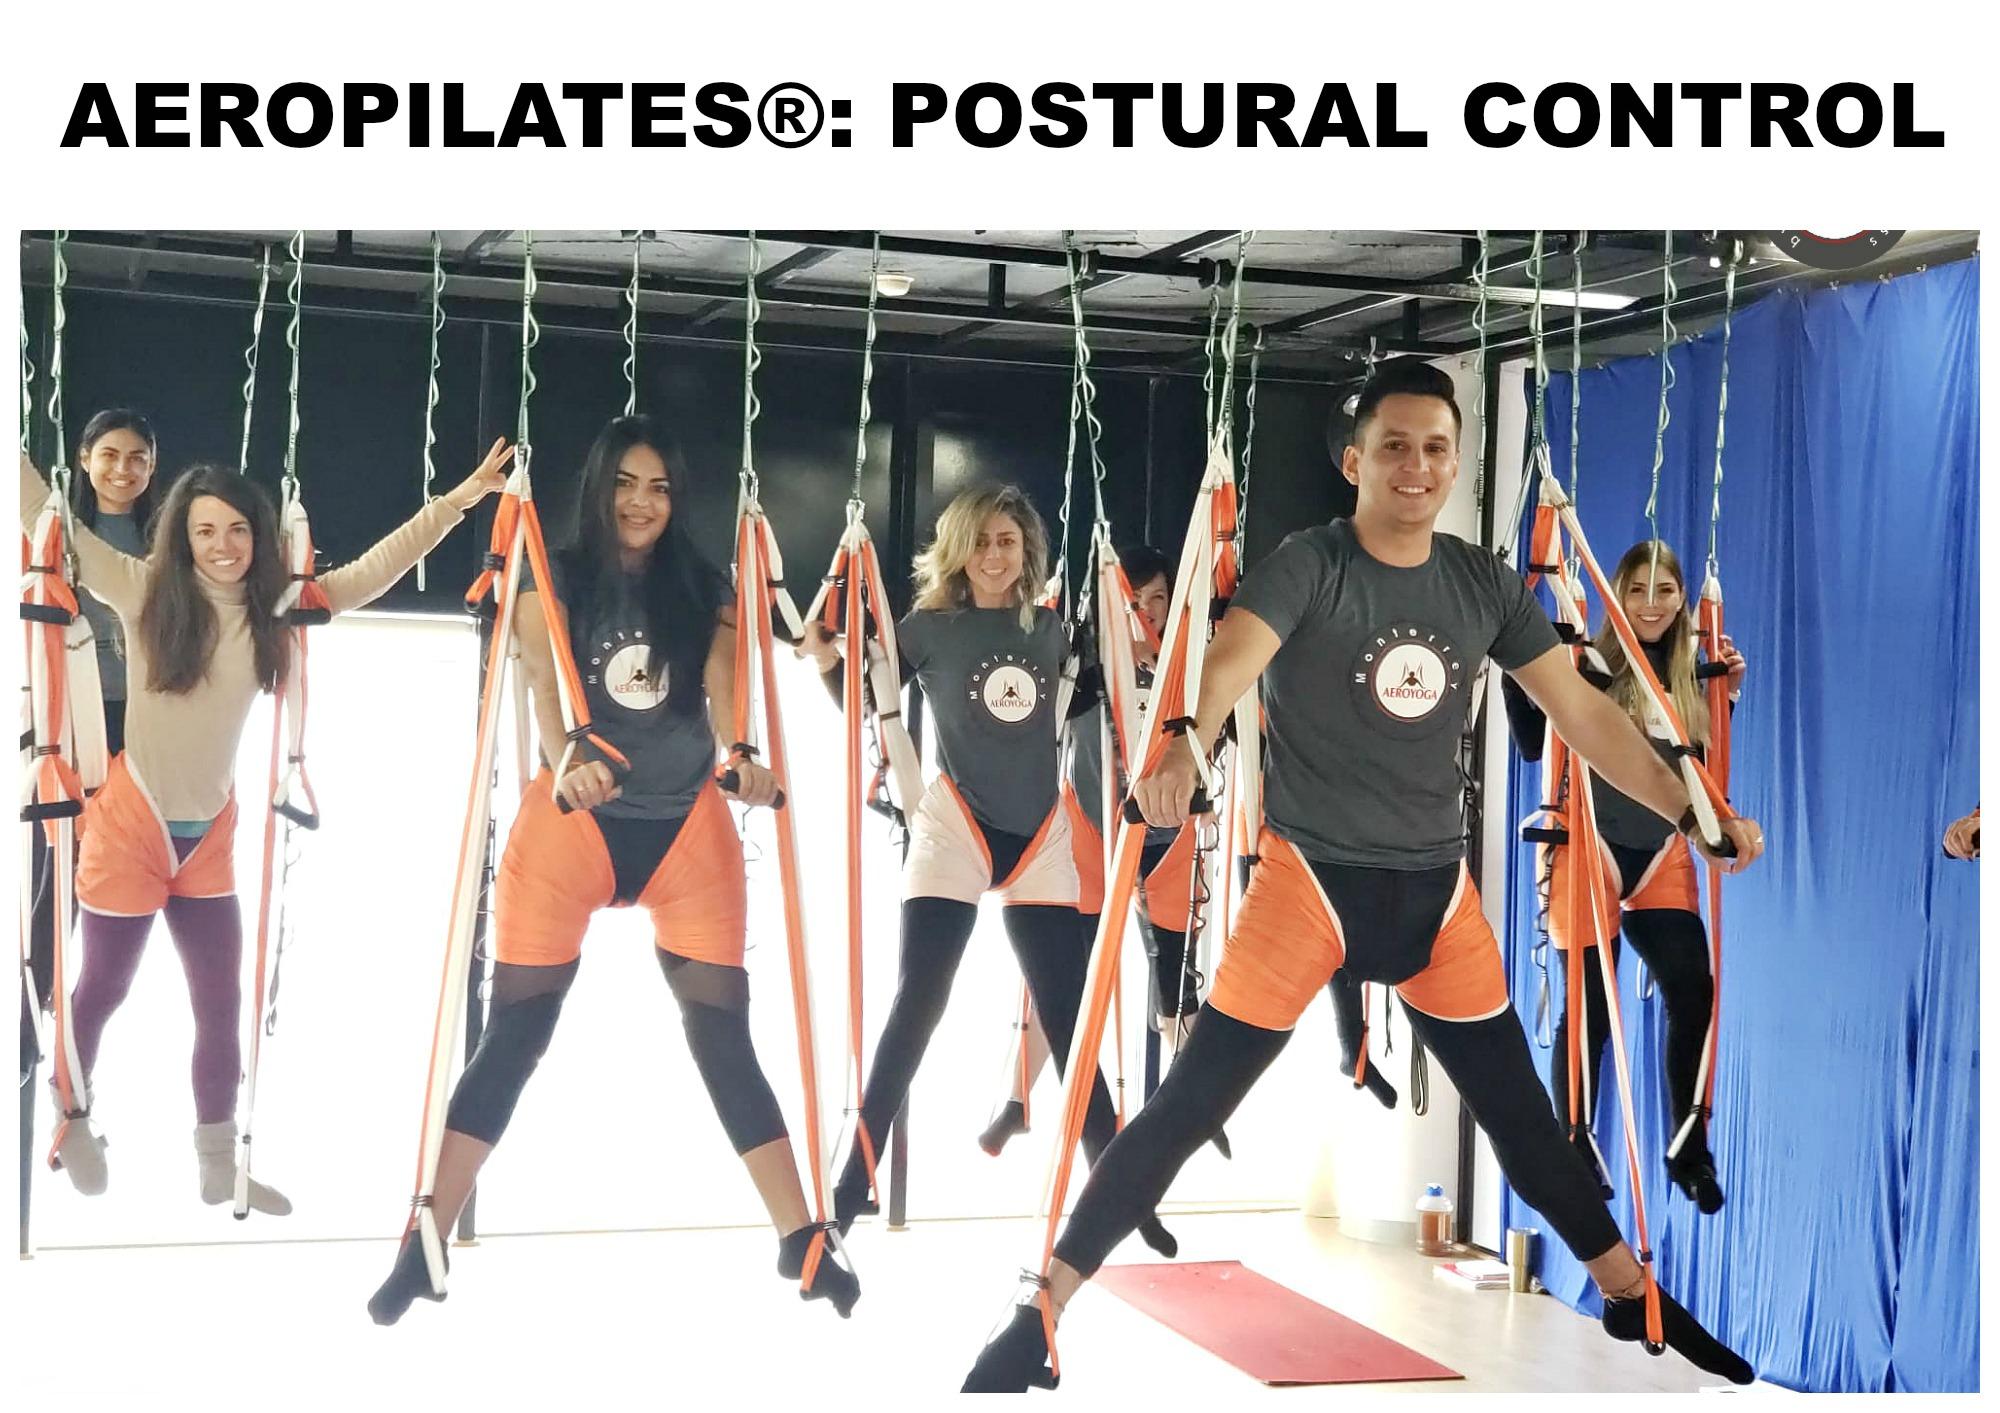 Aerial Pilates: AeroPilates® a Method for Health and Postural Control